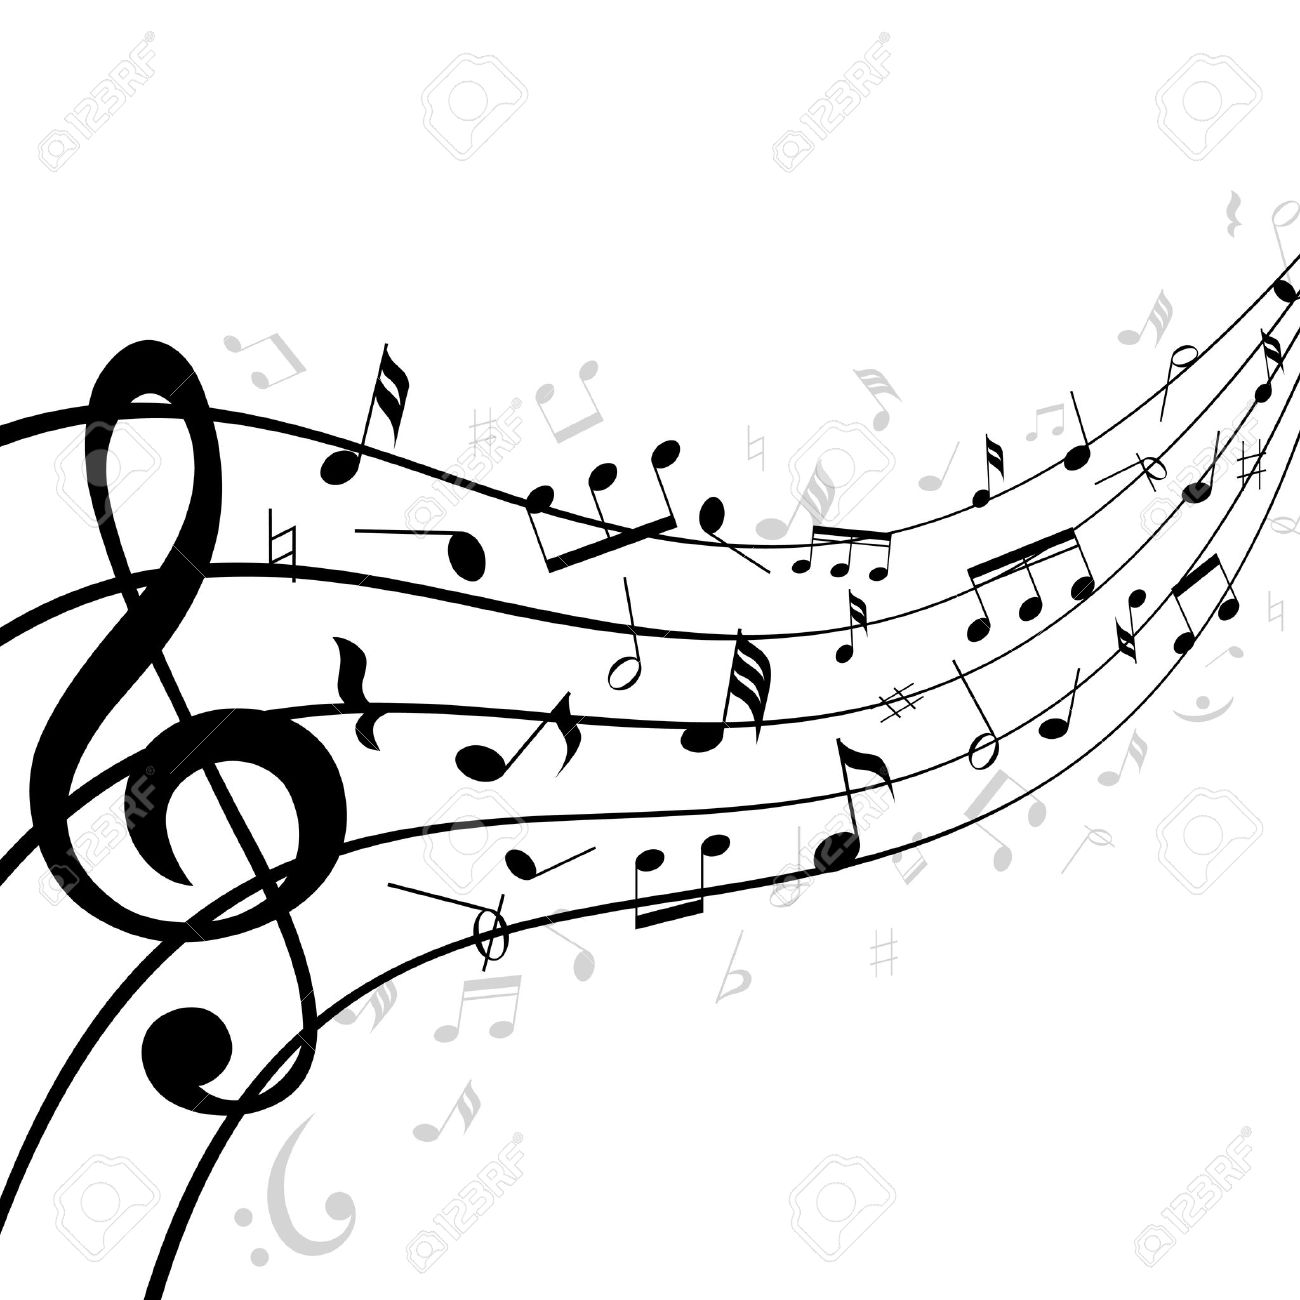 music notes on a stave or staff consisting of five lines curving rh 123rf com Music Clef Clip Art Music Clef Clip Art